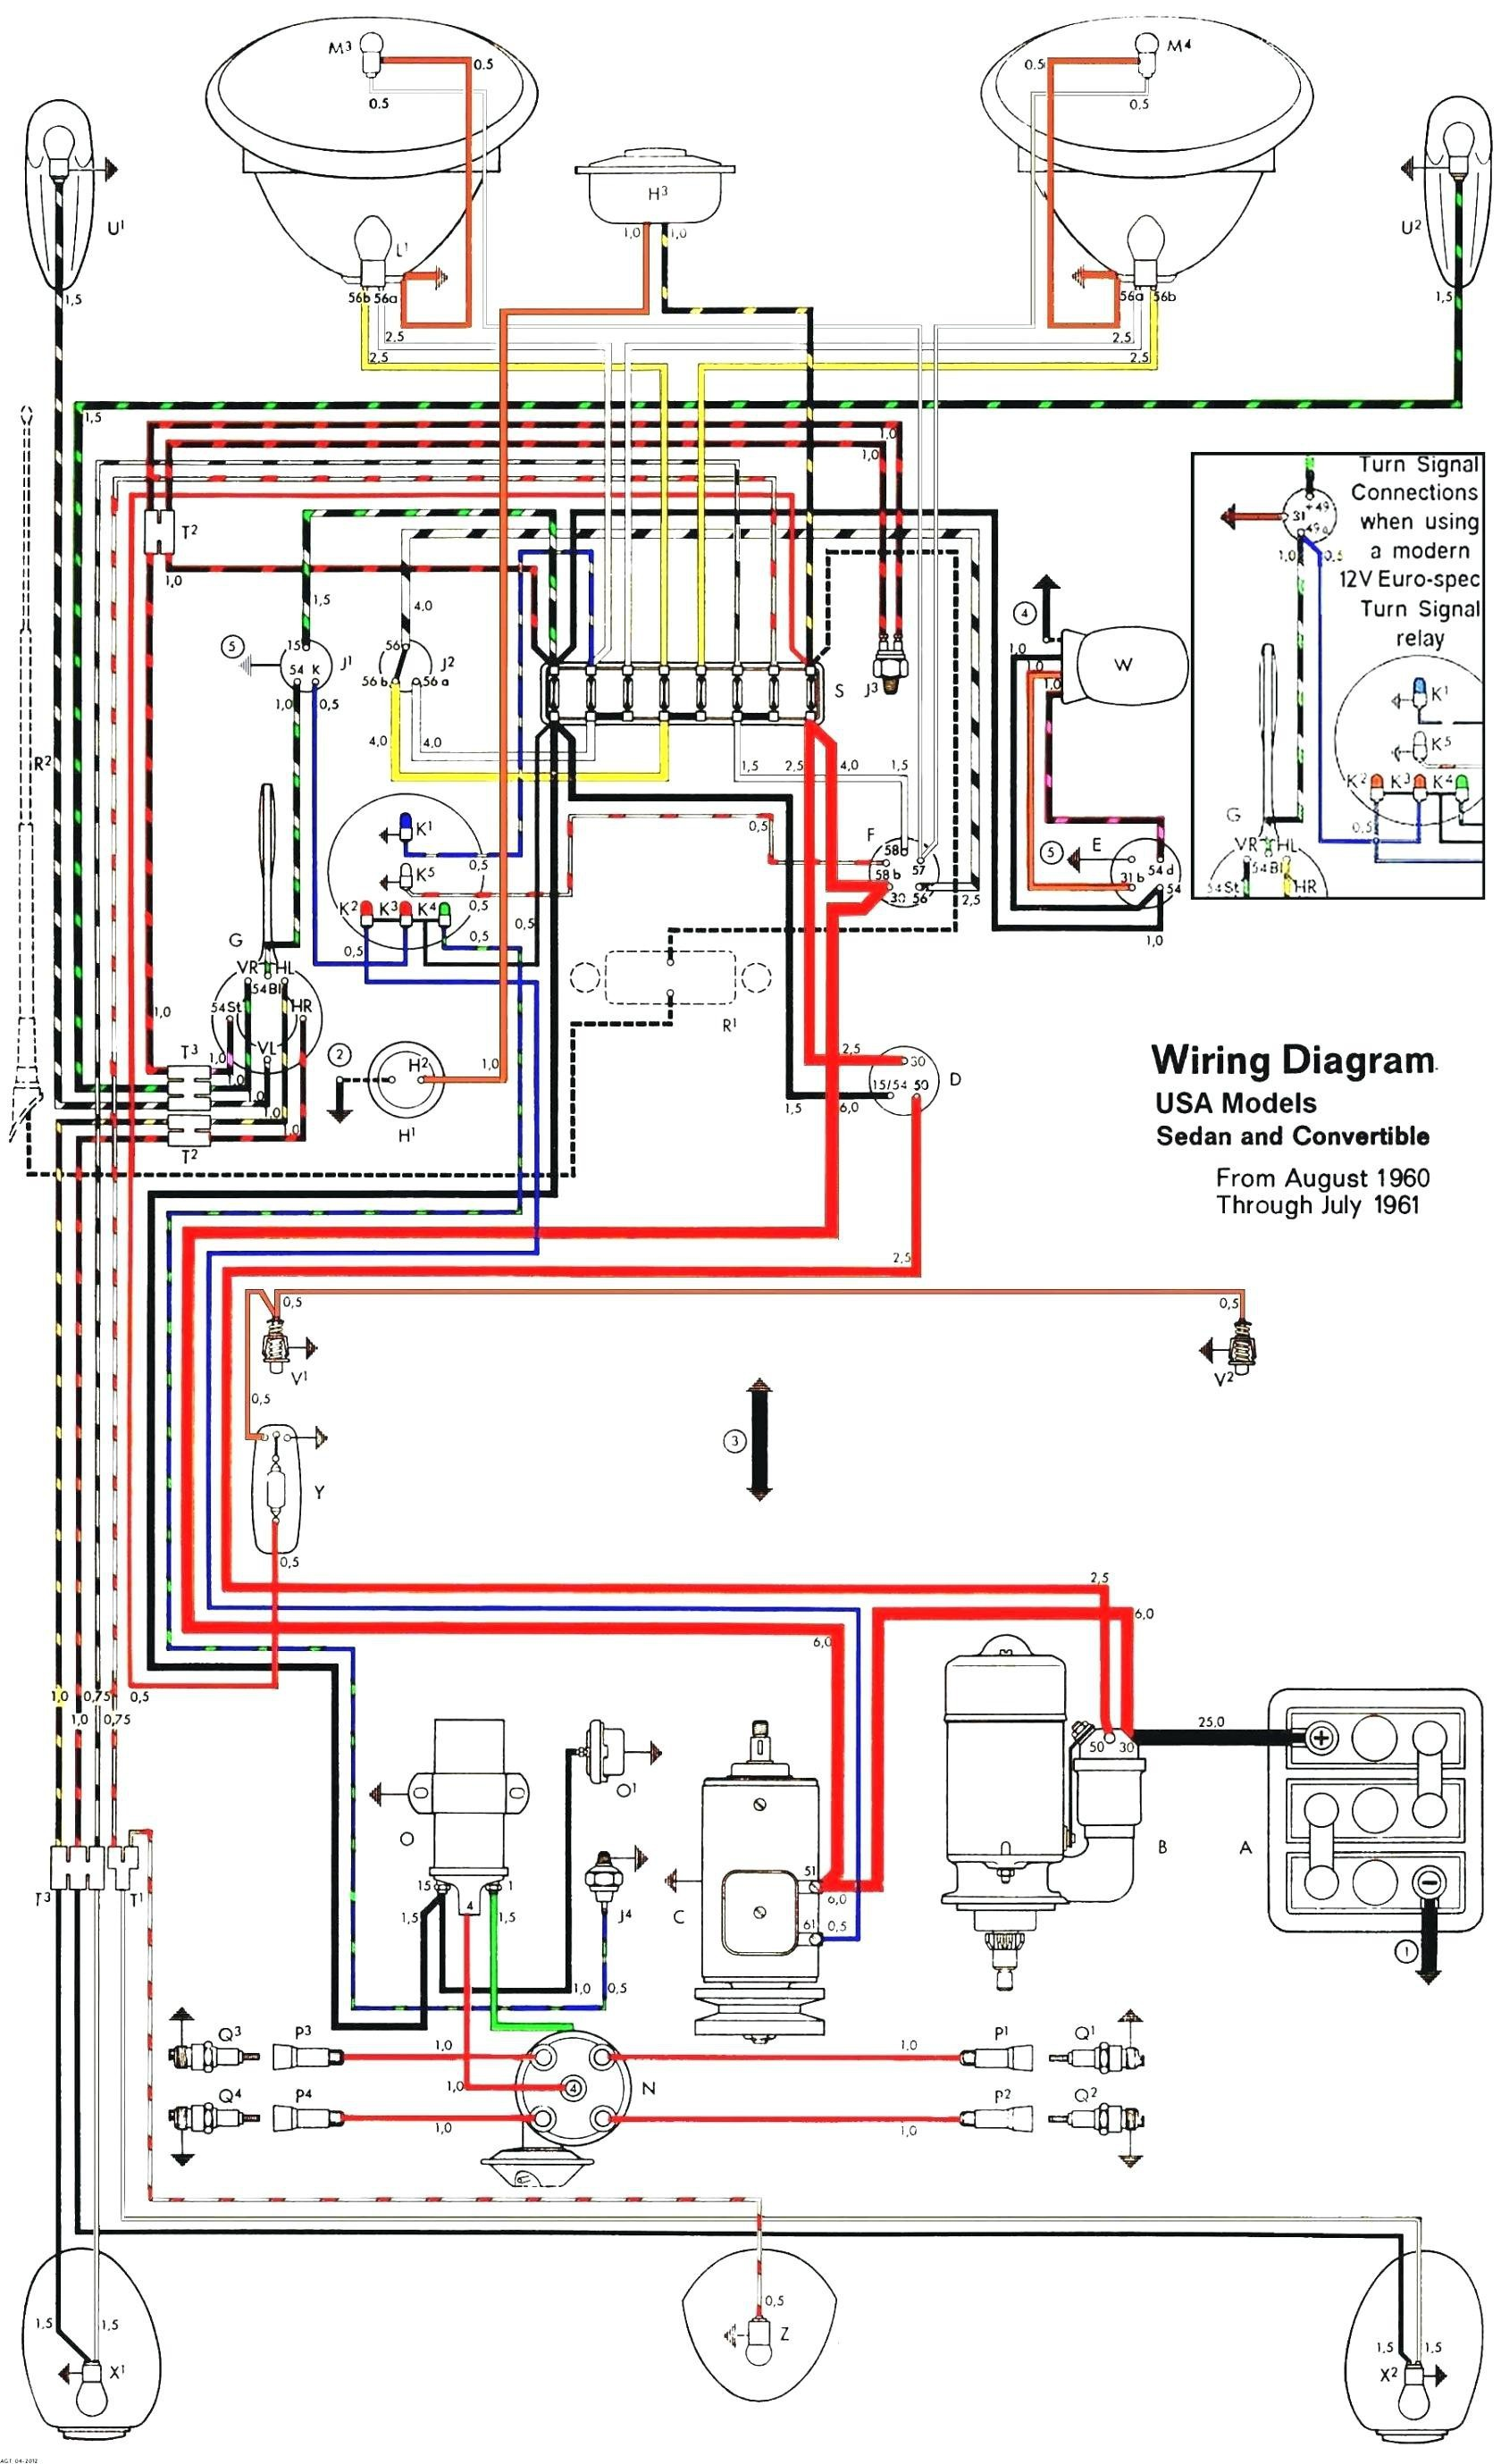 Le Grand Cat5e Wiring Diagram Download Diagrams Plug Legrand Rj45 And Schematics Connector Jack